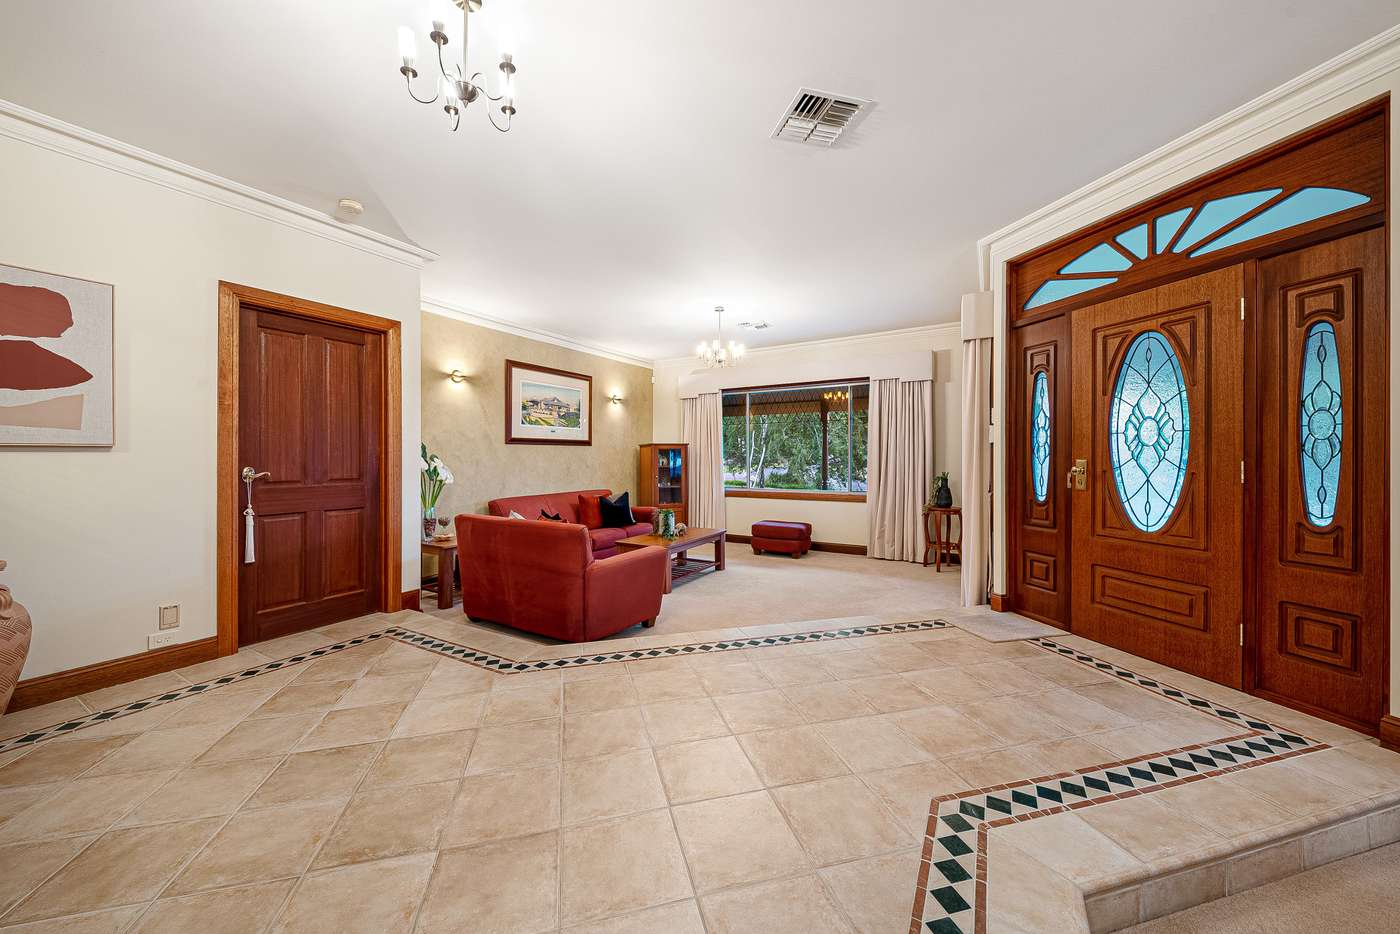 Sixth view of Homely house listing, 14 Parkside Drive, Gulfview Heights SA 5096